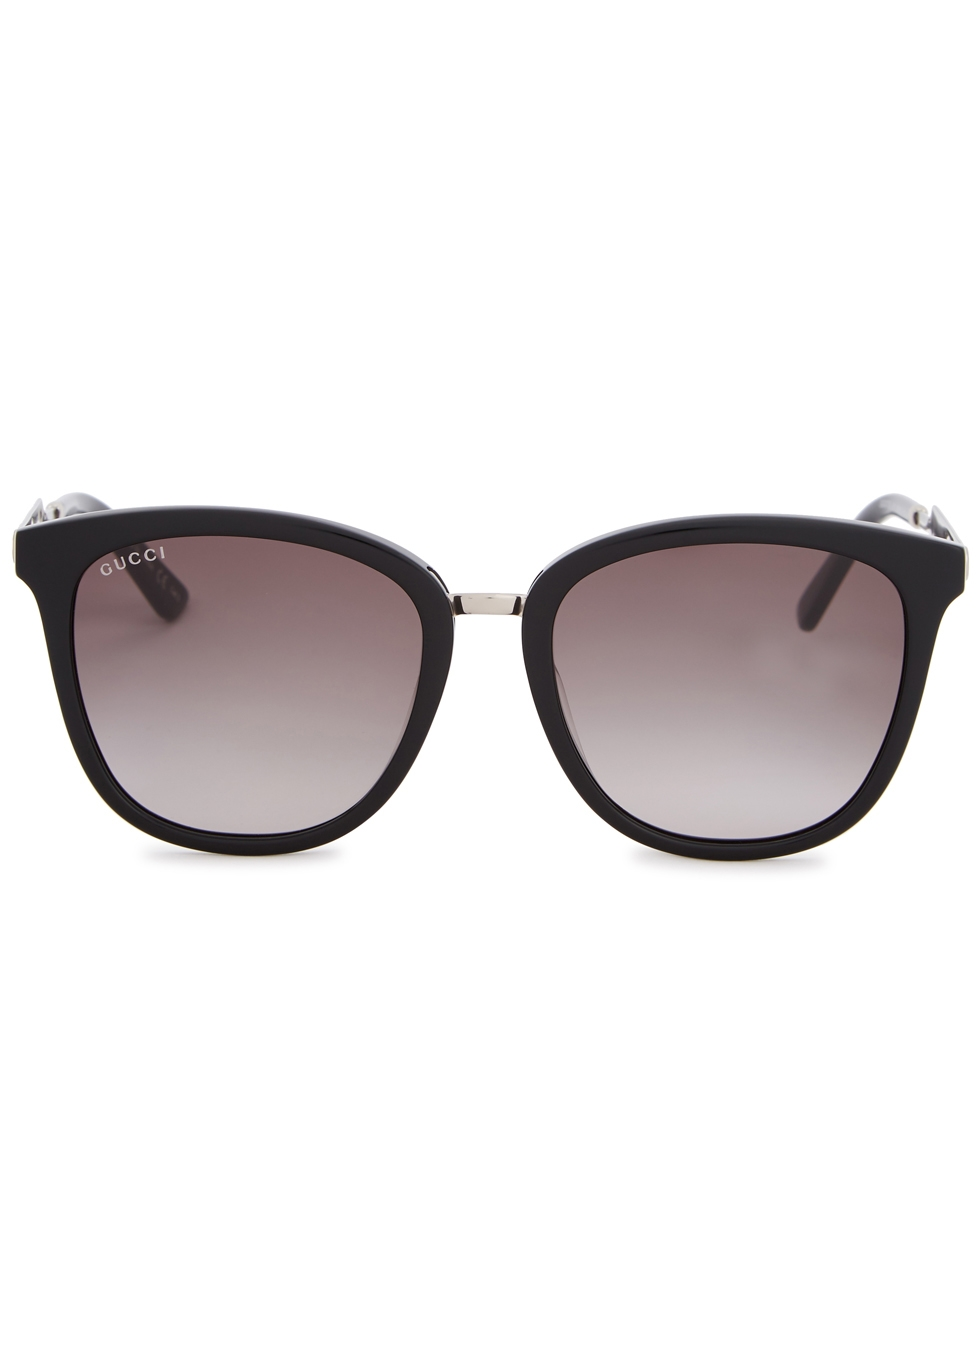 Black square-frame sunglasses - Gucci